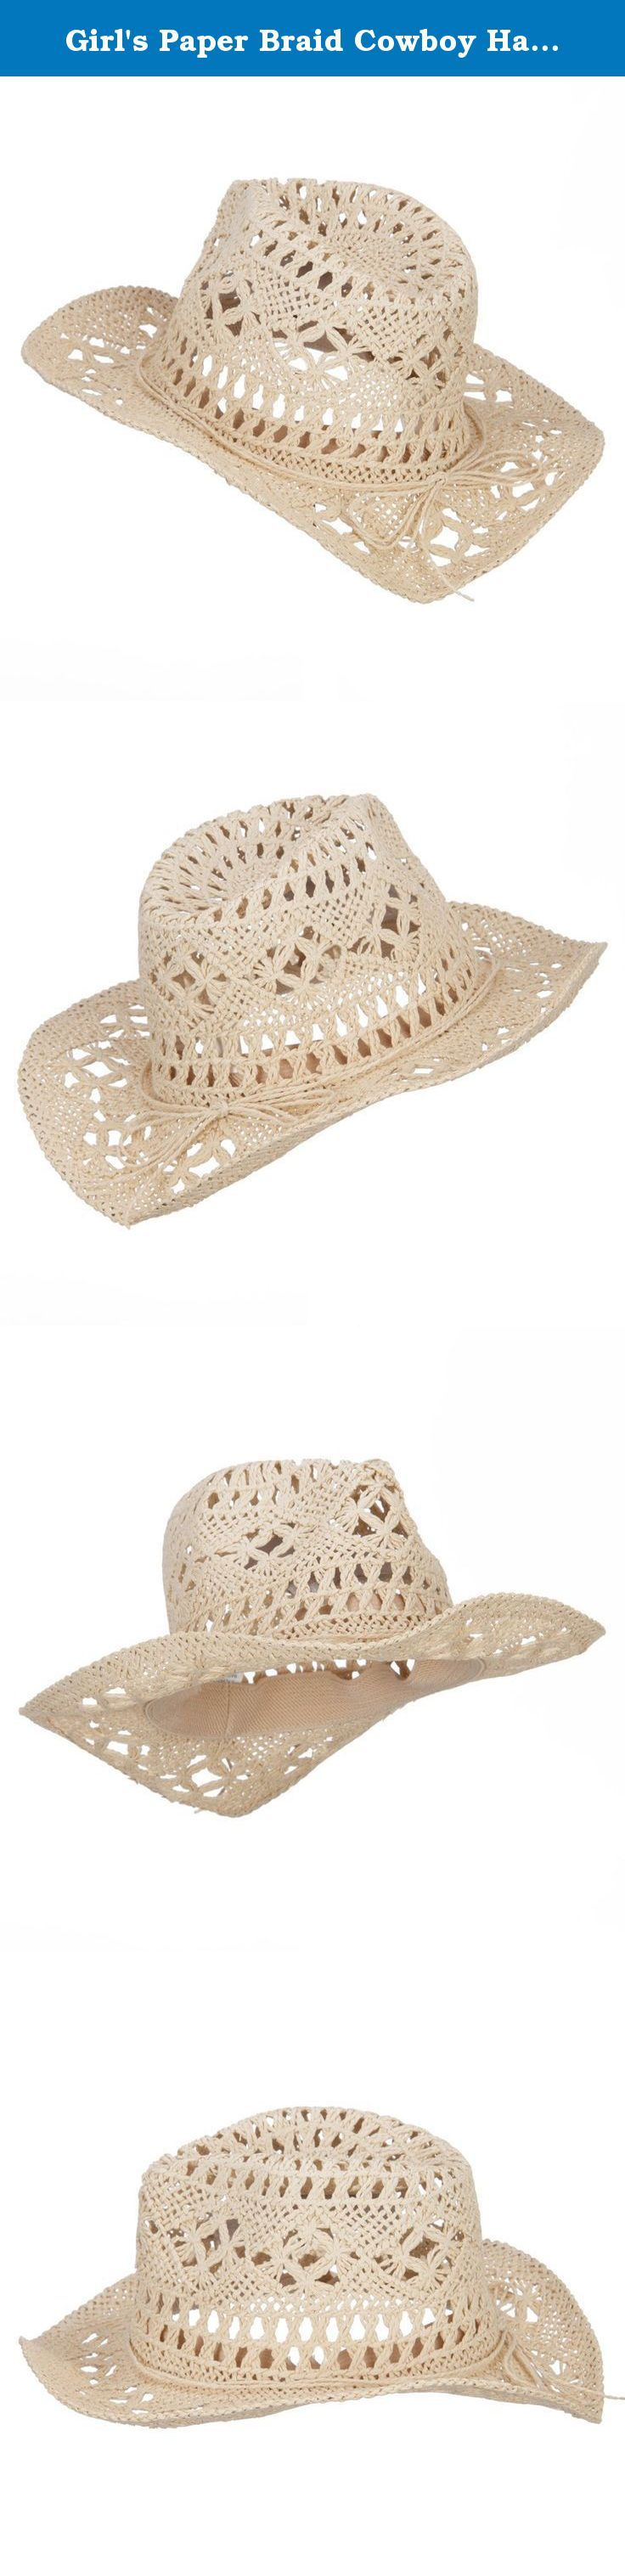 Girl's Paper Braid Cowboy Hat - Tan OSFM. Cool paper braid cowboy hat for your little girls. Crushed top crown. Open weave crown. A self tie ribbon band is accented around the crown. Wired and shapeable brim. Side brim is naturally upturned. Our kid's cowboy hat is great for summer trips, adventure and any other summer outdoor activity for your children. Spring and Summer. 12(W) X 13(L) X 5(H) inches. Cool, flexible and thick material. Available in different colors and styles.